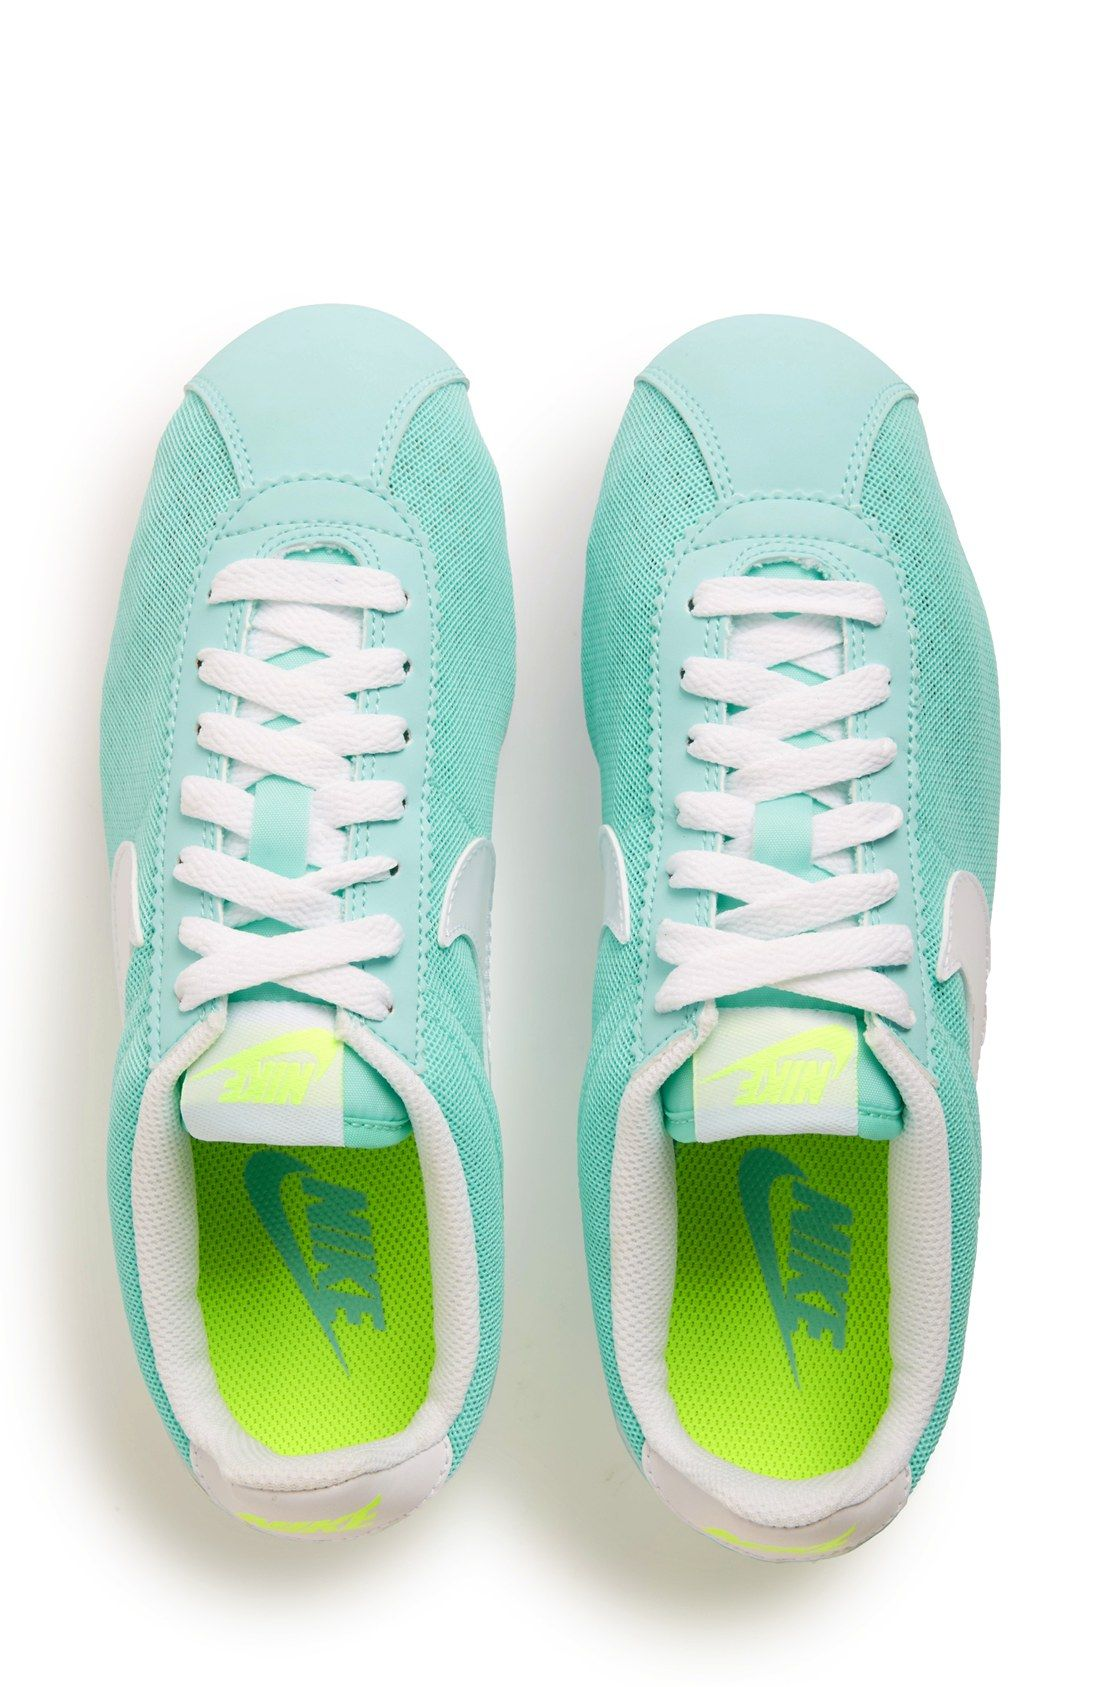 outlet store d17d7 a458a Obsessed with these Nike  Classic Cortez  sneakers! One of Nike s most  recognizable designs